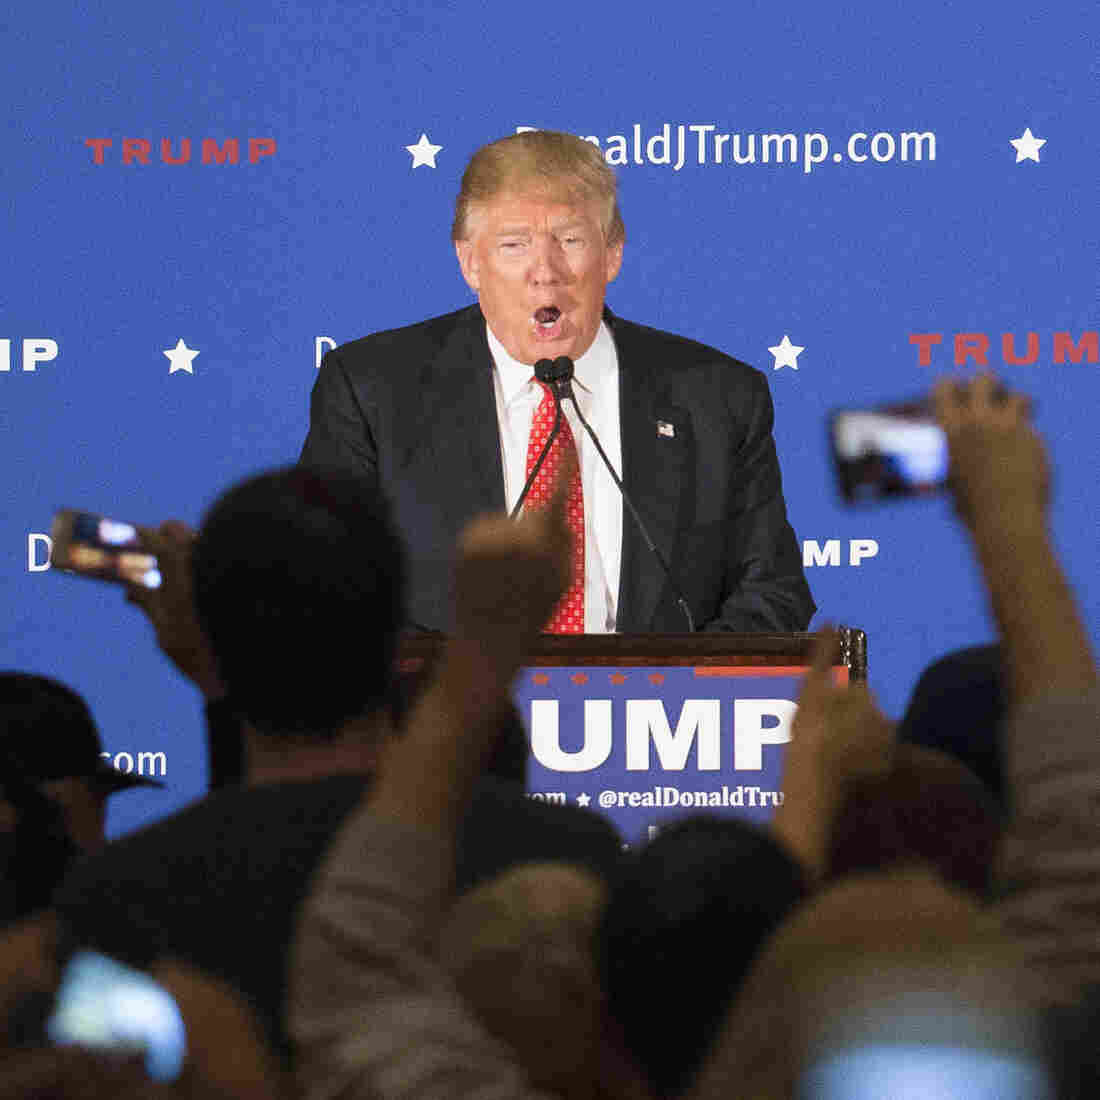 Republican presidential candidate Donald Trump speaks as the crowd applauds during a campaign stop at the Radisson Hotel in Nashua, N.H., on Friday.